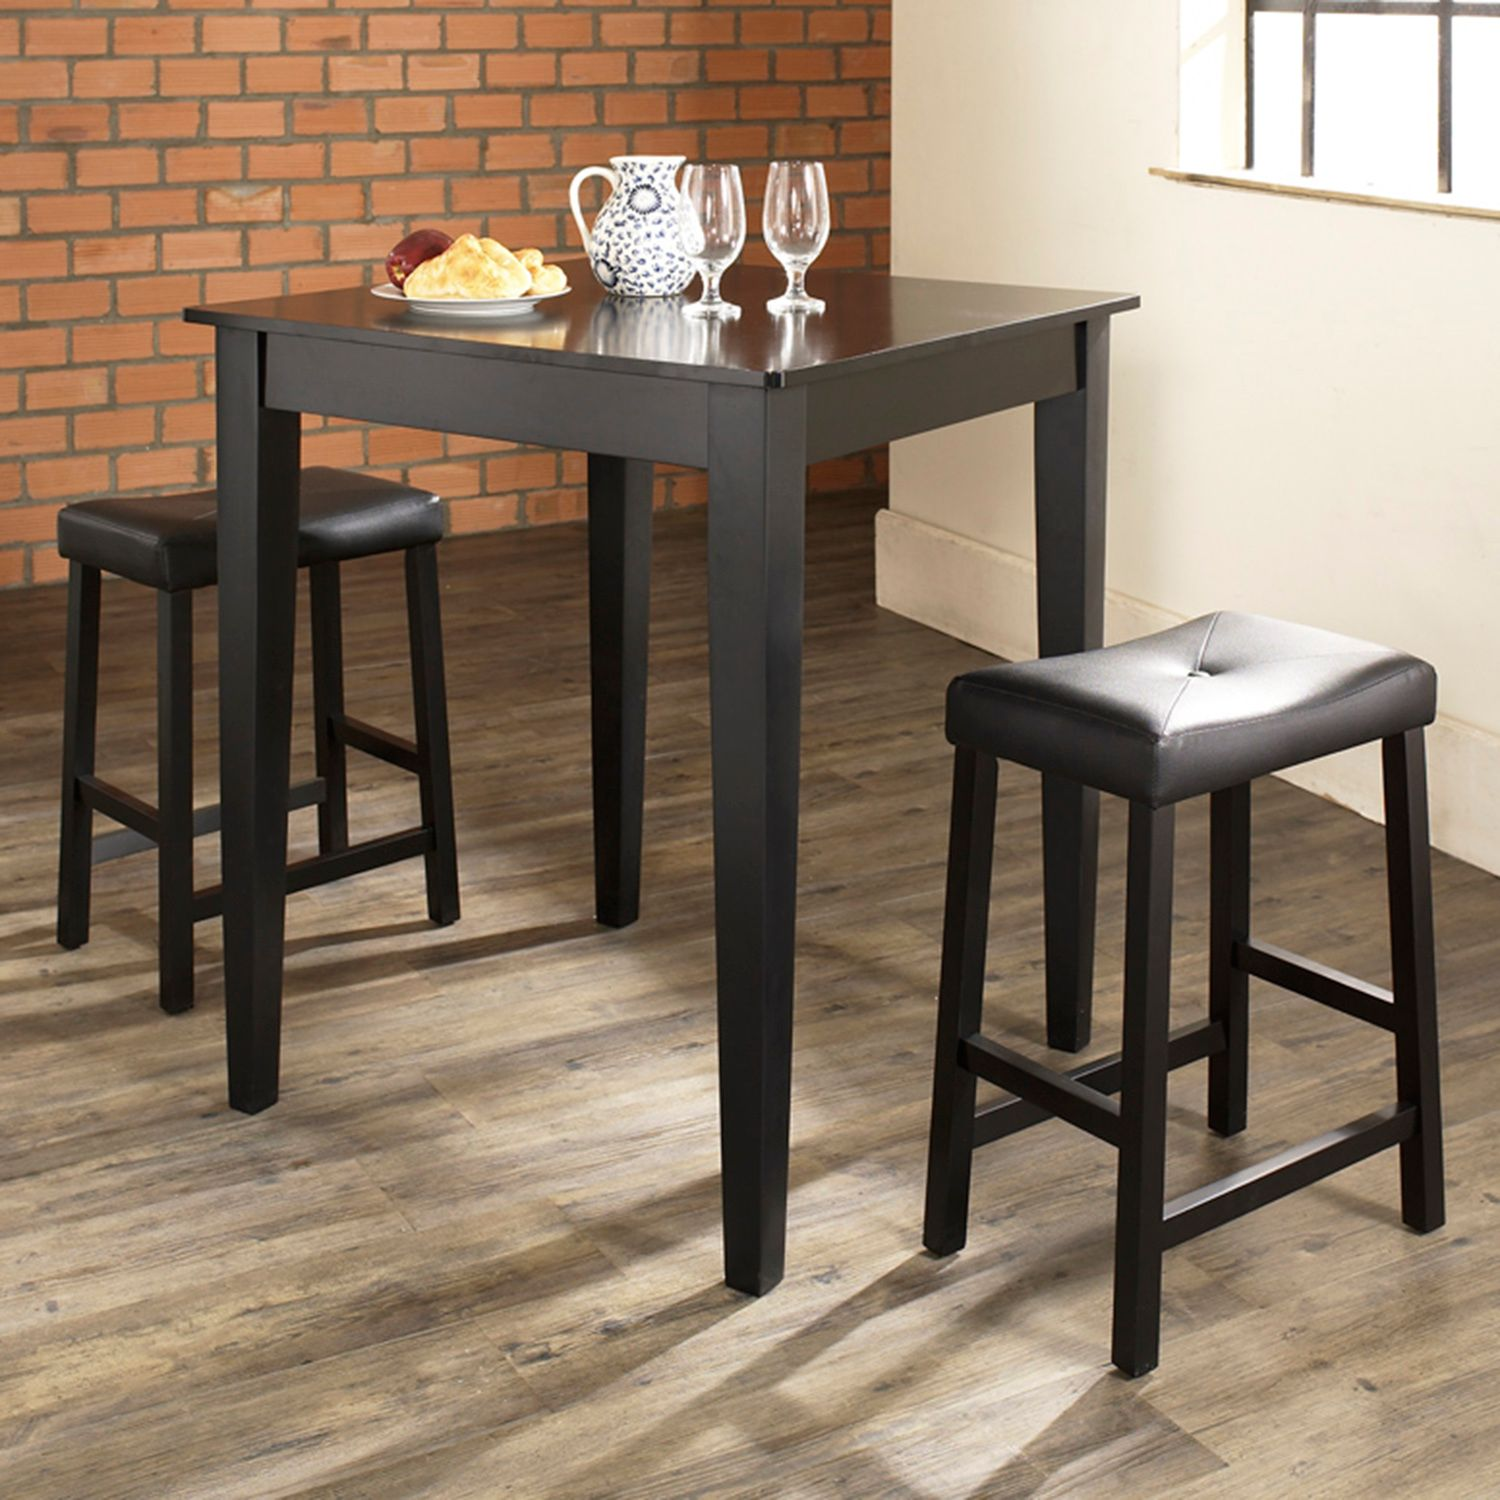 Superbe Crosley Furniture 3 Piece Tapered Leg Dining Set